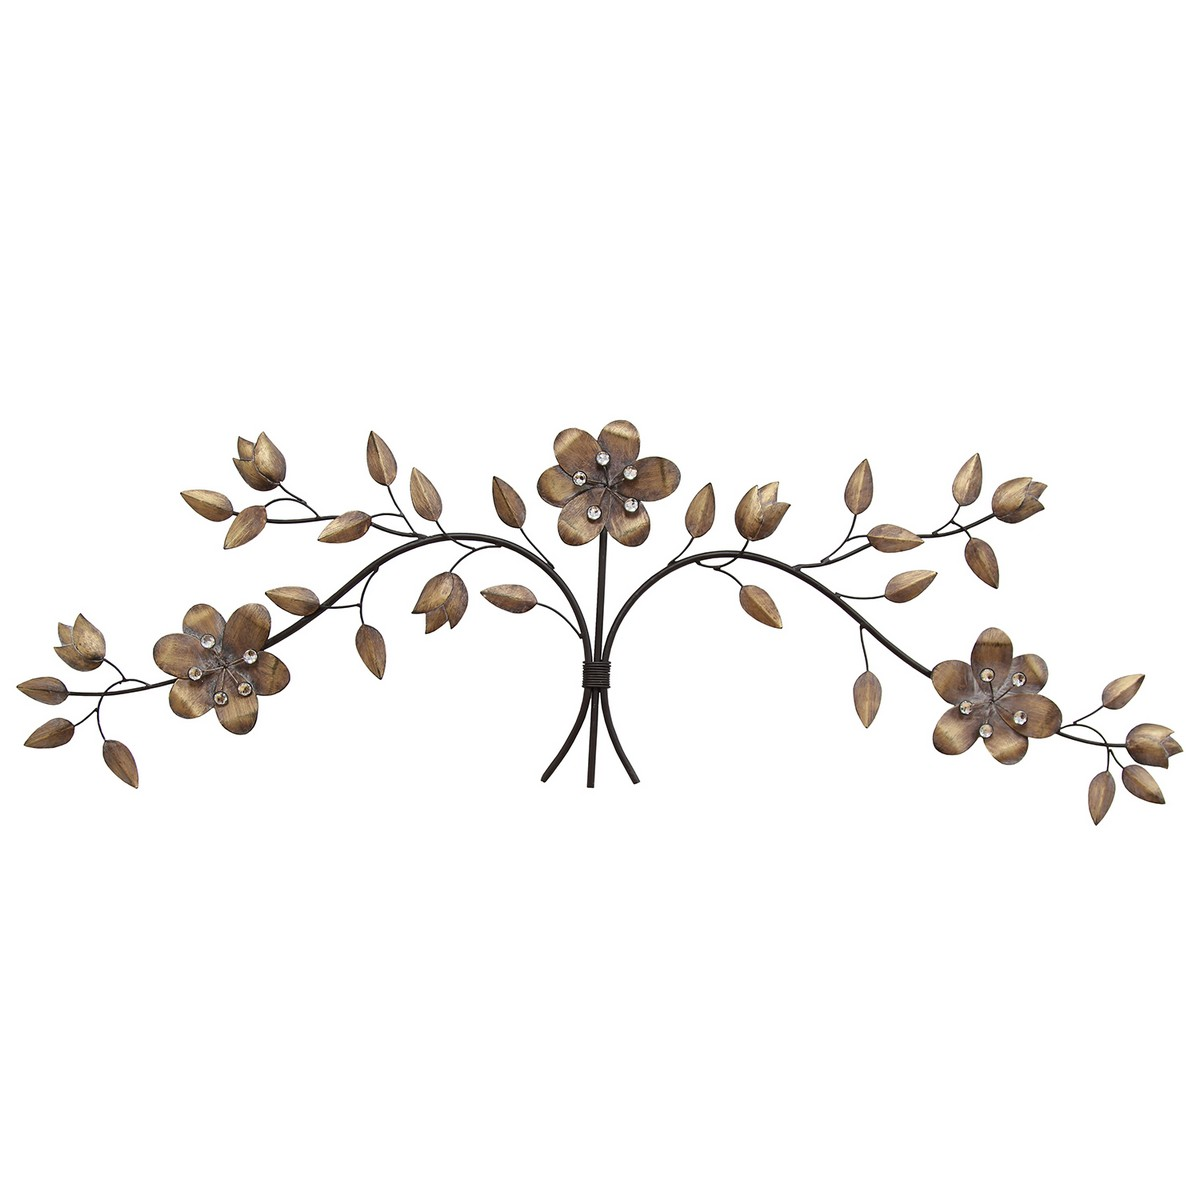 Stratton Home Decor Over the Door Floral Bouquet Wall Decor - Multi